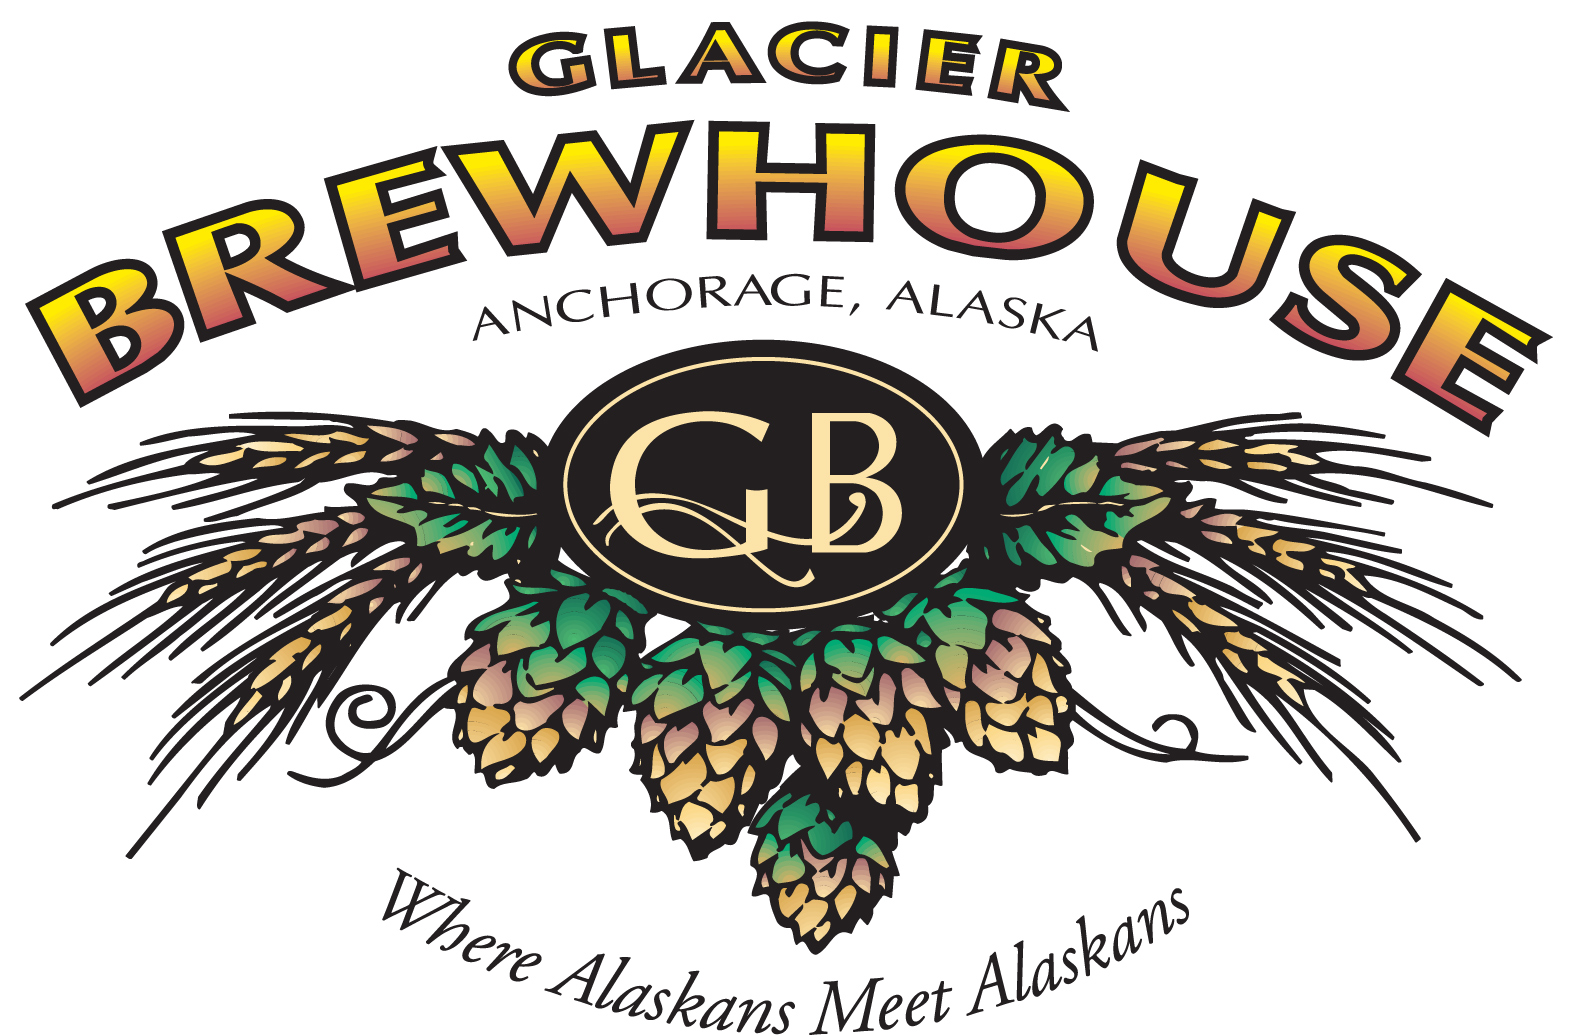 Co color art printing anchorage alaska - Glacier Brewhouse Alaska S